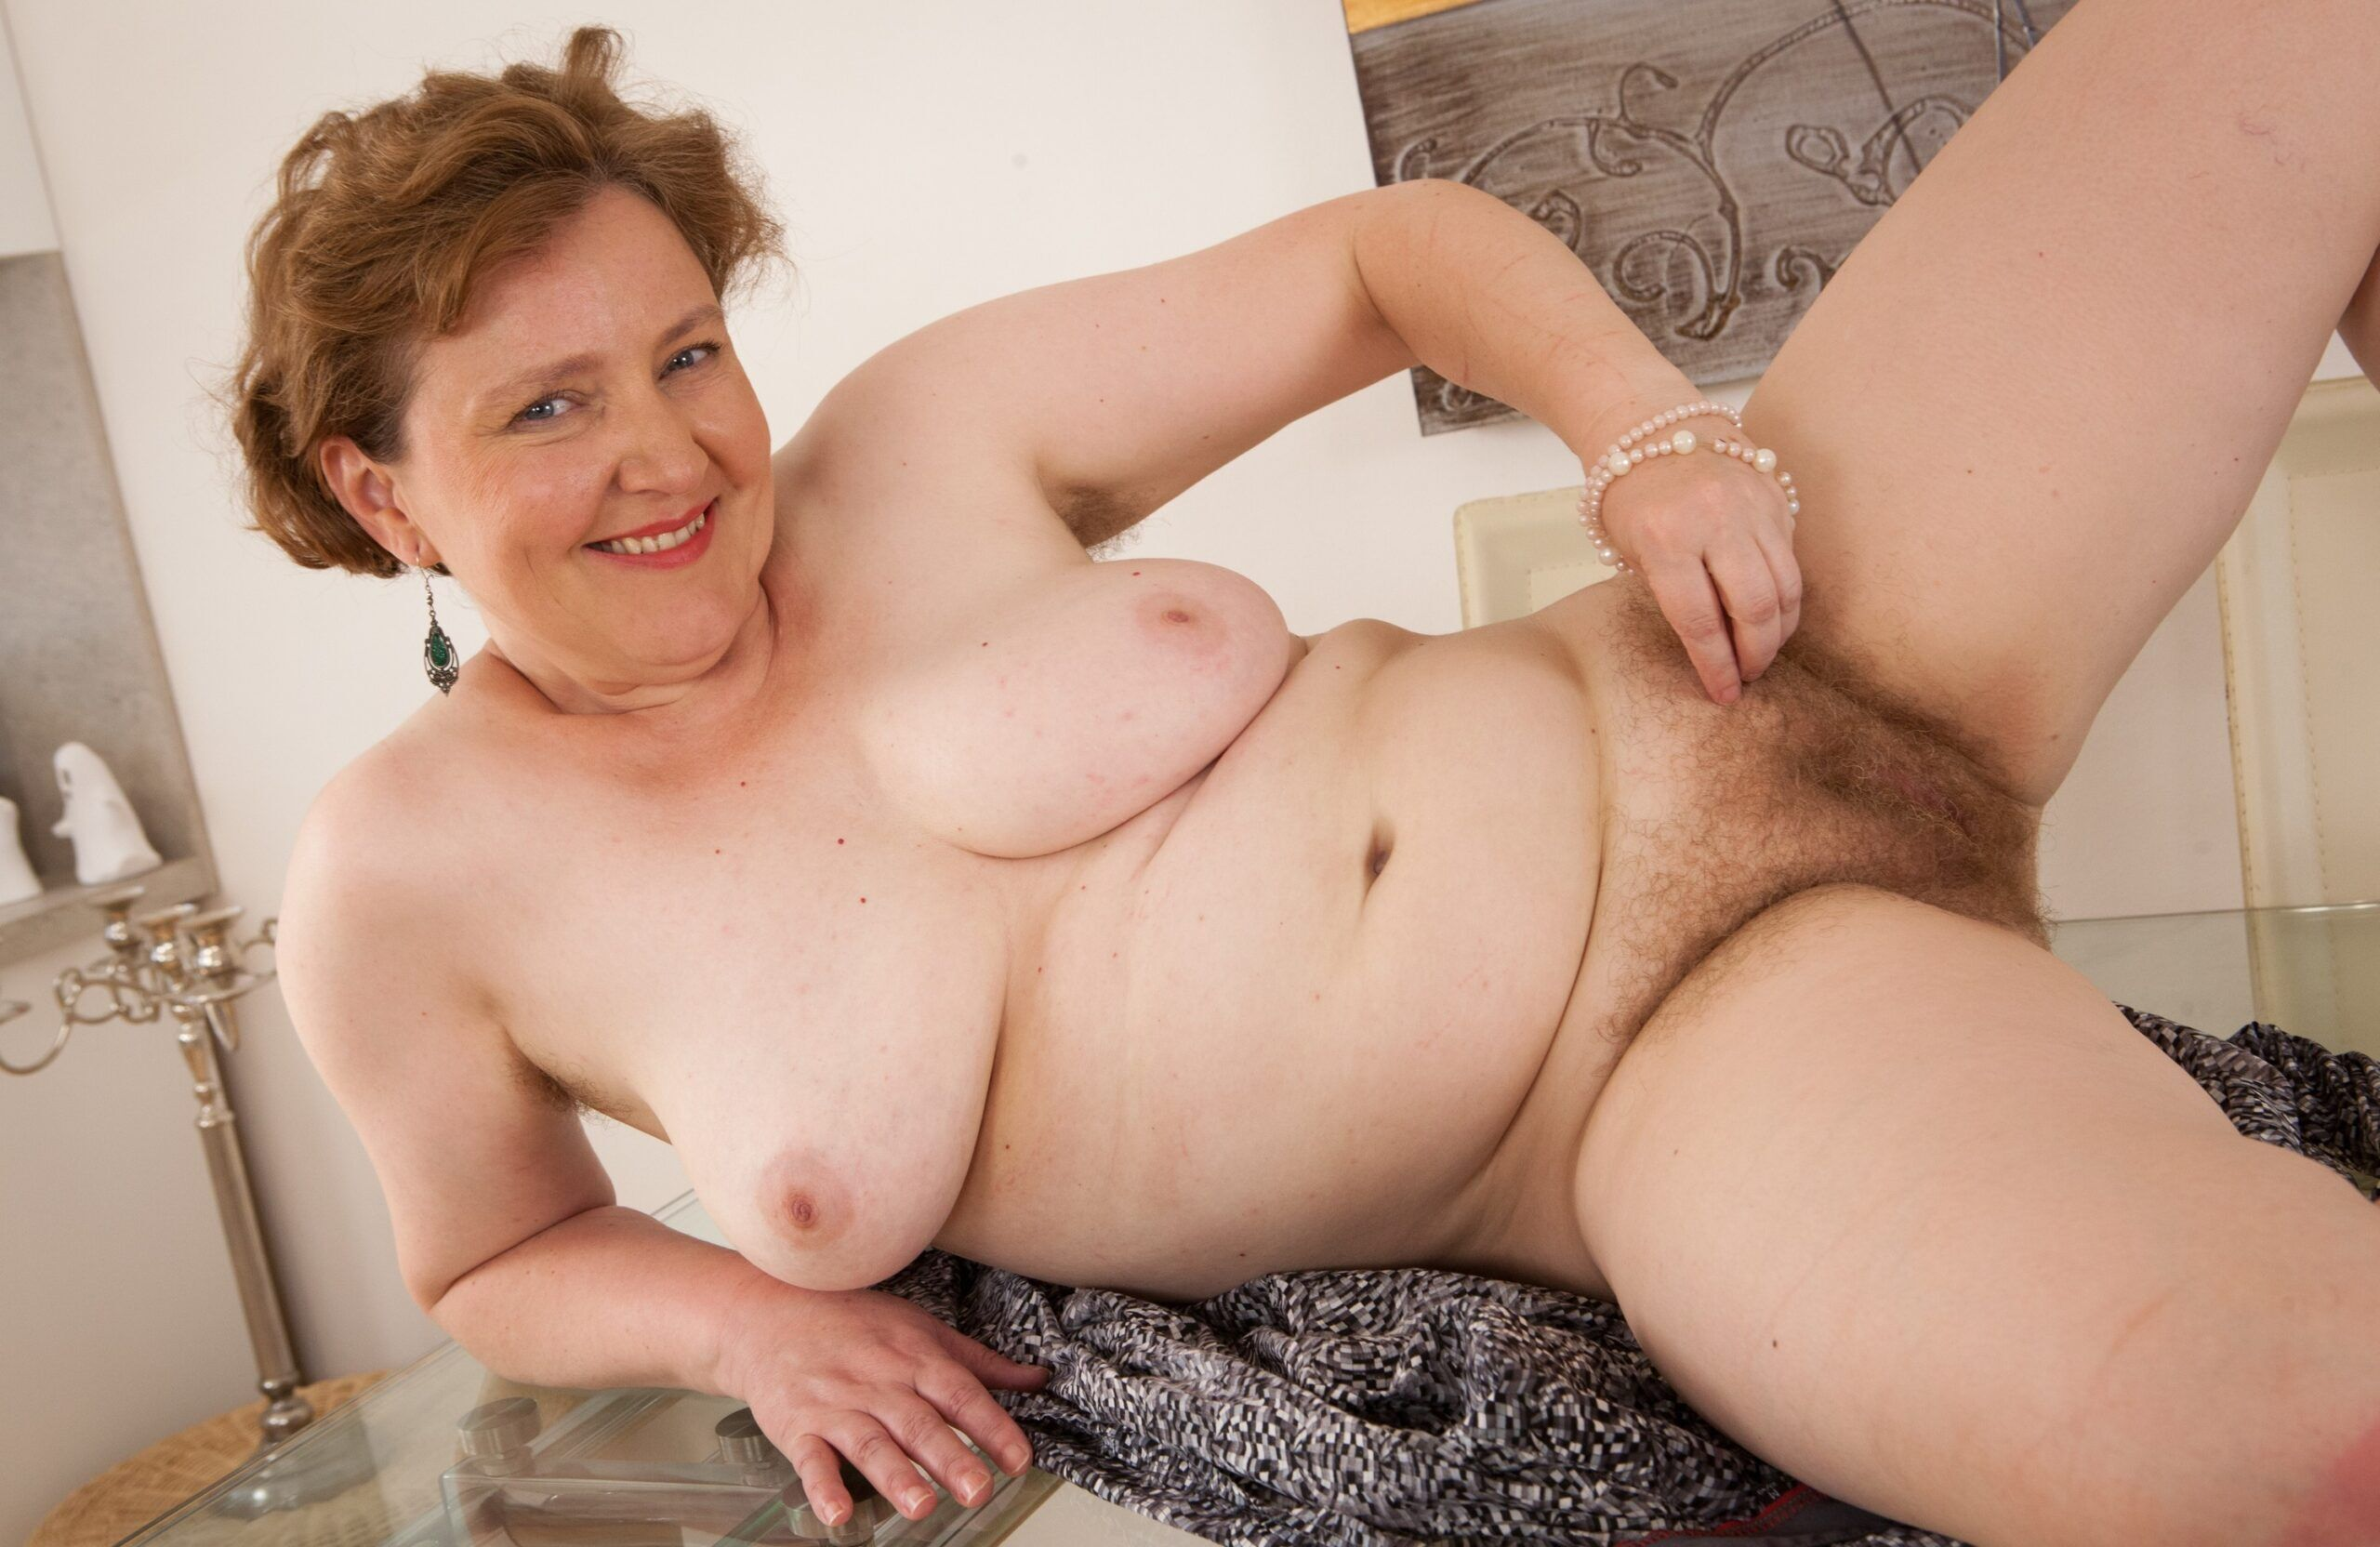 my natural hairy unshaved pussy real nudity mature